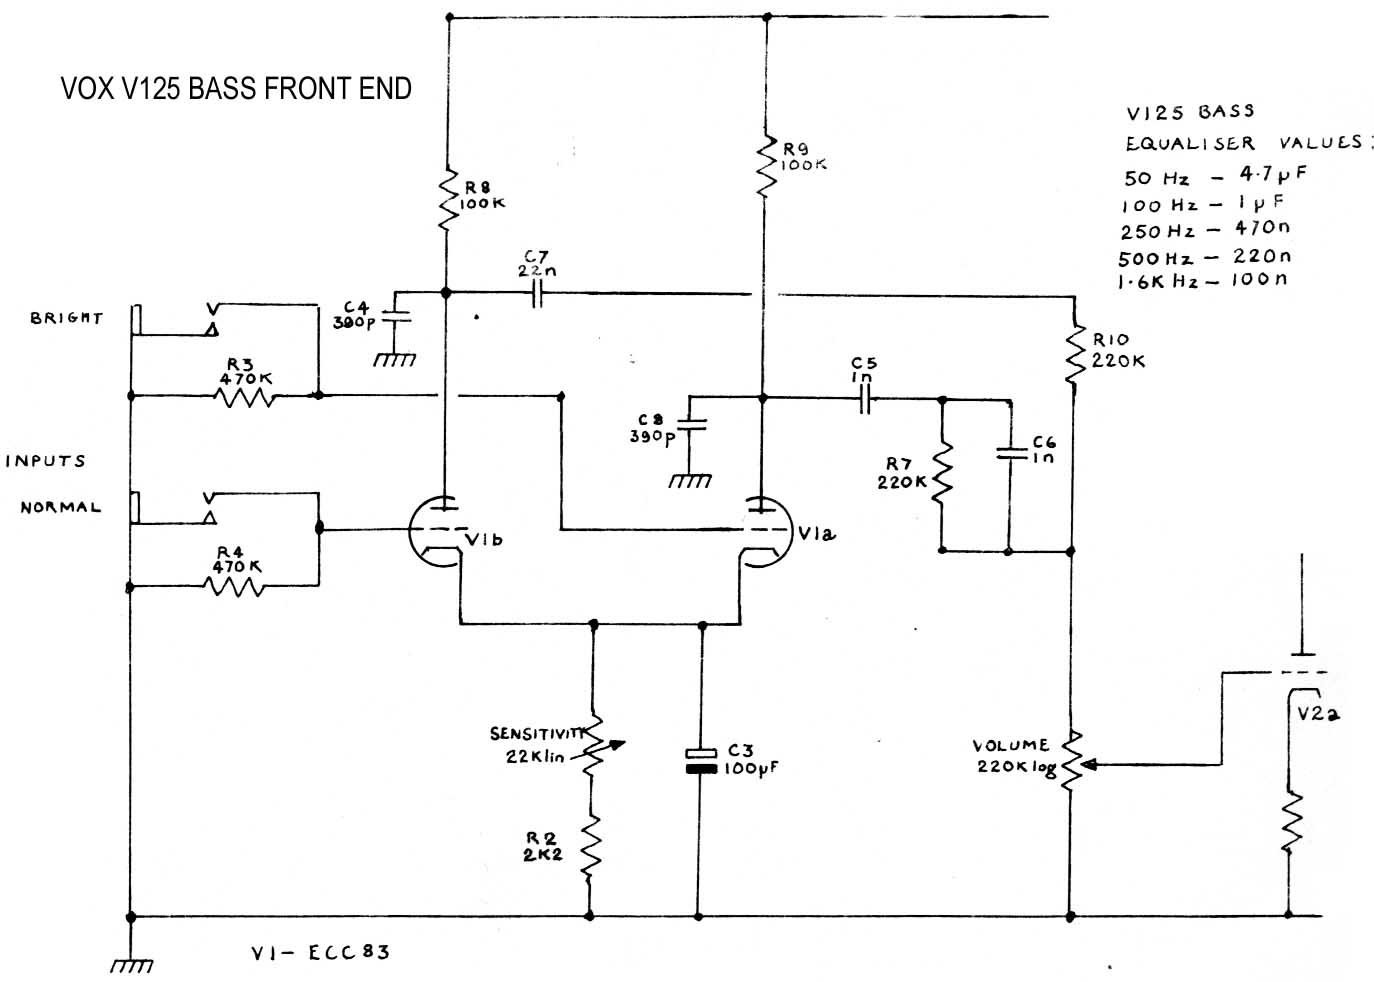 Bass Tube Amp Schematic